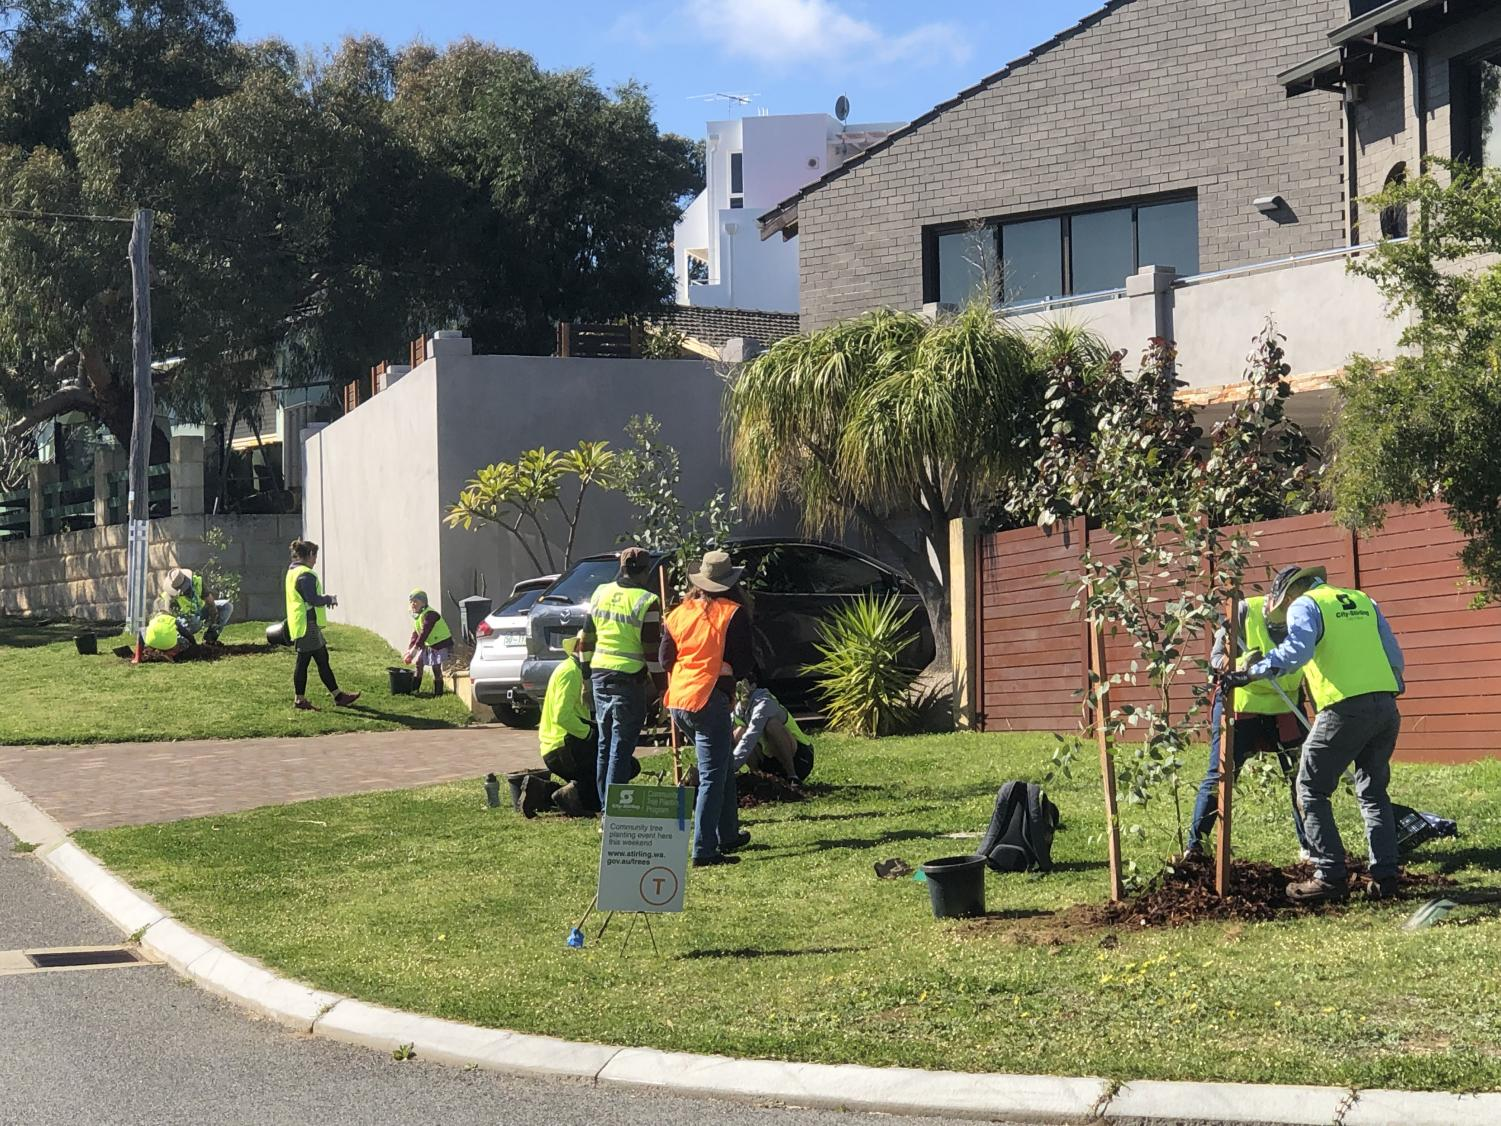 City of Stirling residents plant trees to increase local canopy coverage.